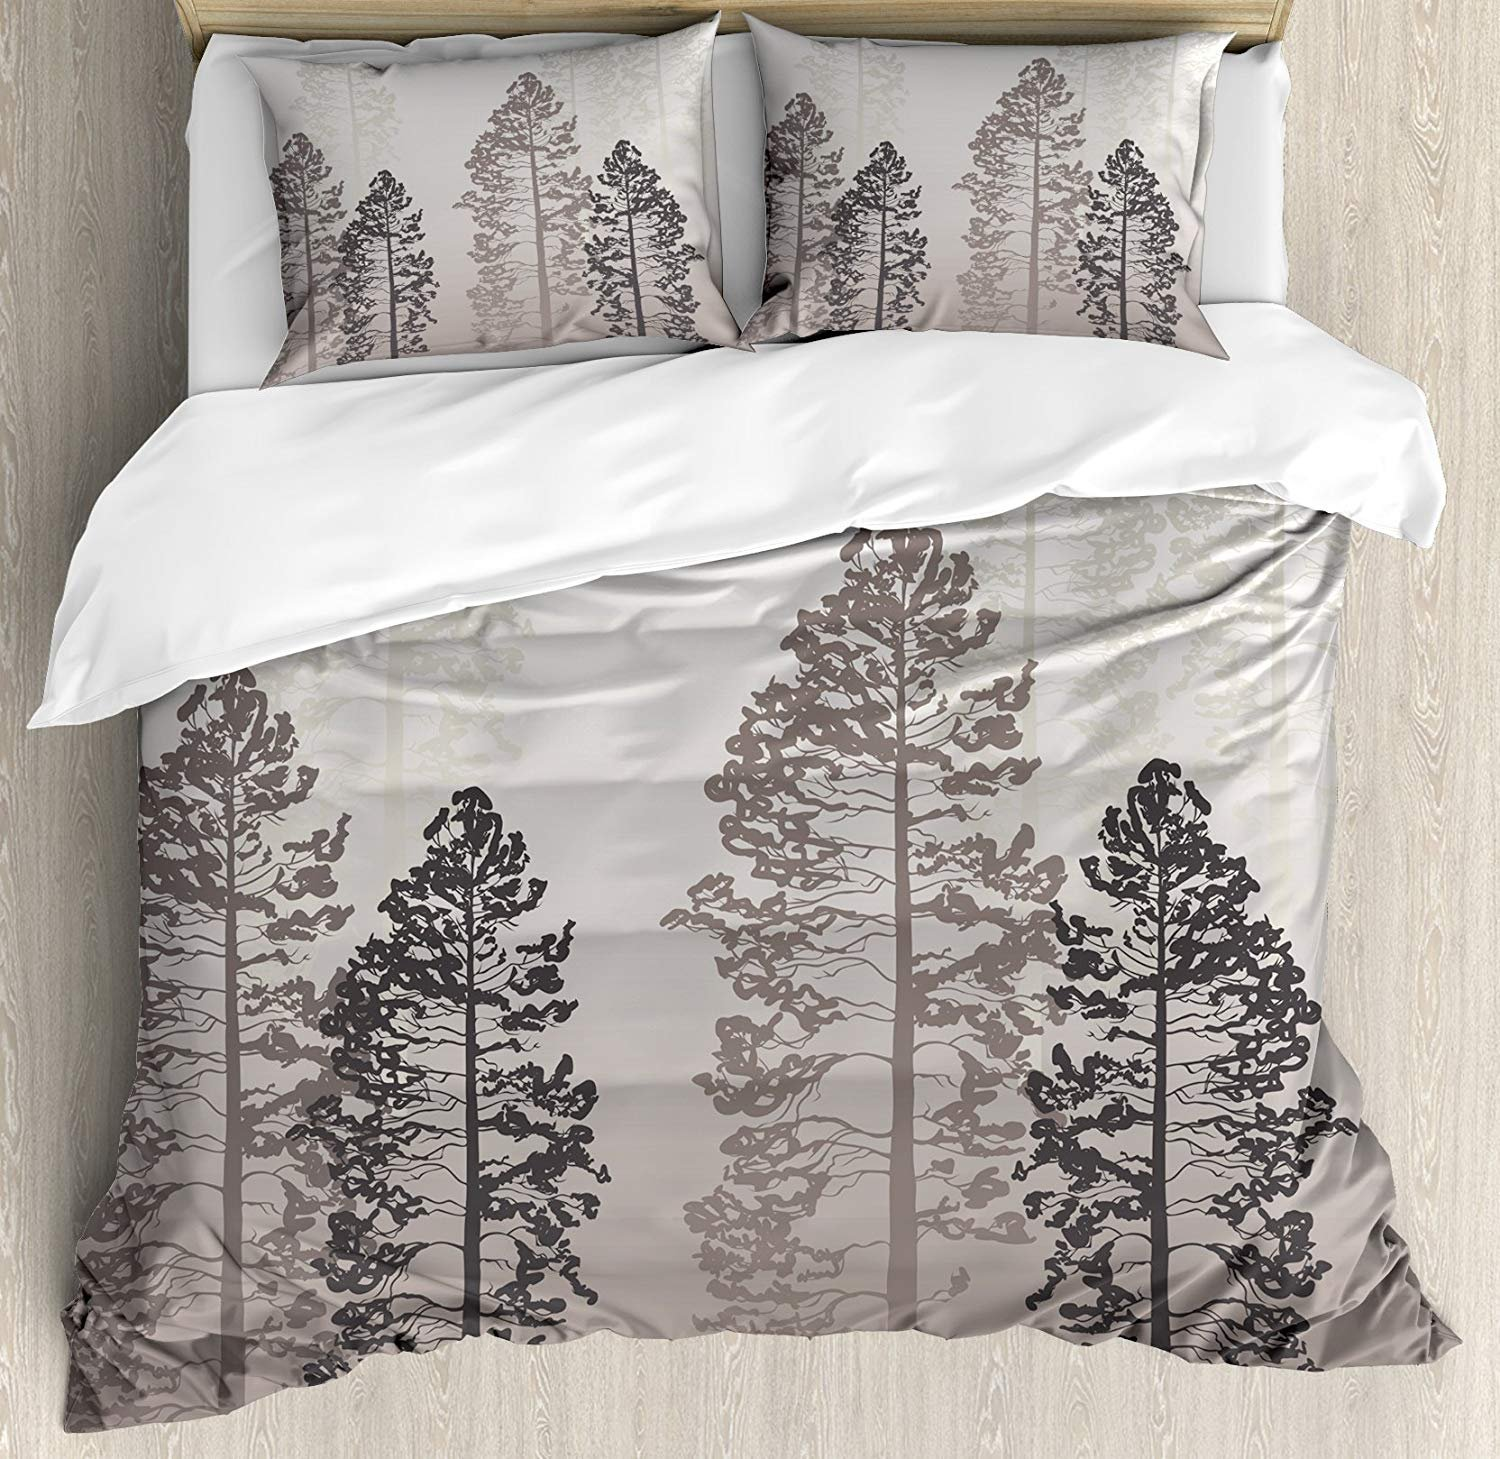 Twin Size Country 4 piece Duvet Cover Set Bedspread, Pine Trees in the Forest on Foggy Seem Ombre Backdrop Wildlife Adventure Artwork, 4pcs Bedding Set for Kids/Childrens/Adults Decor, Warm Taupe